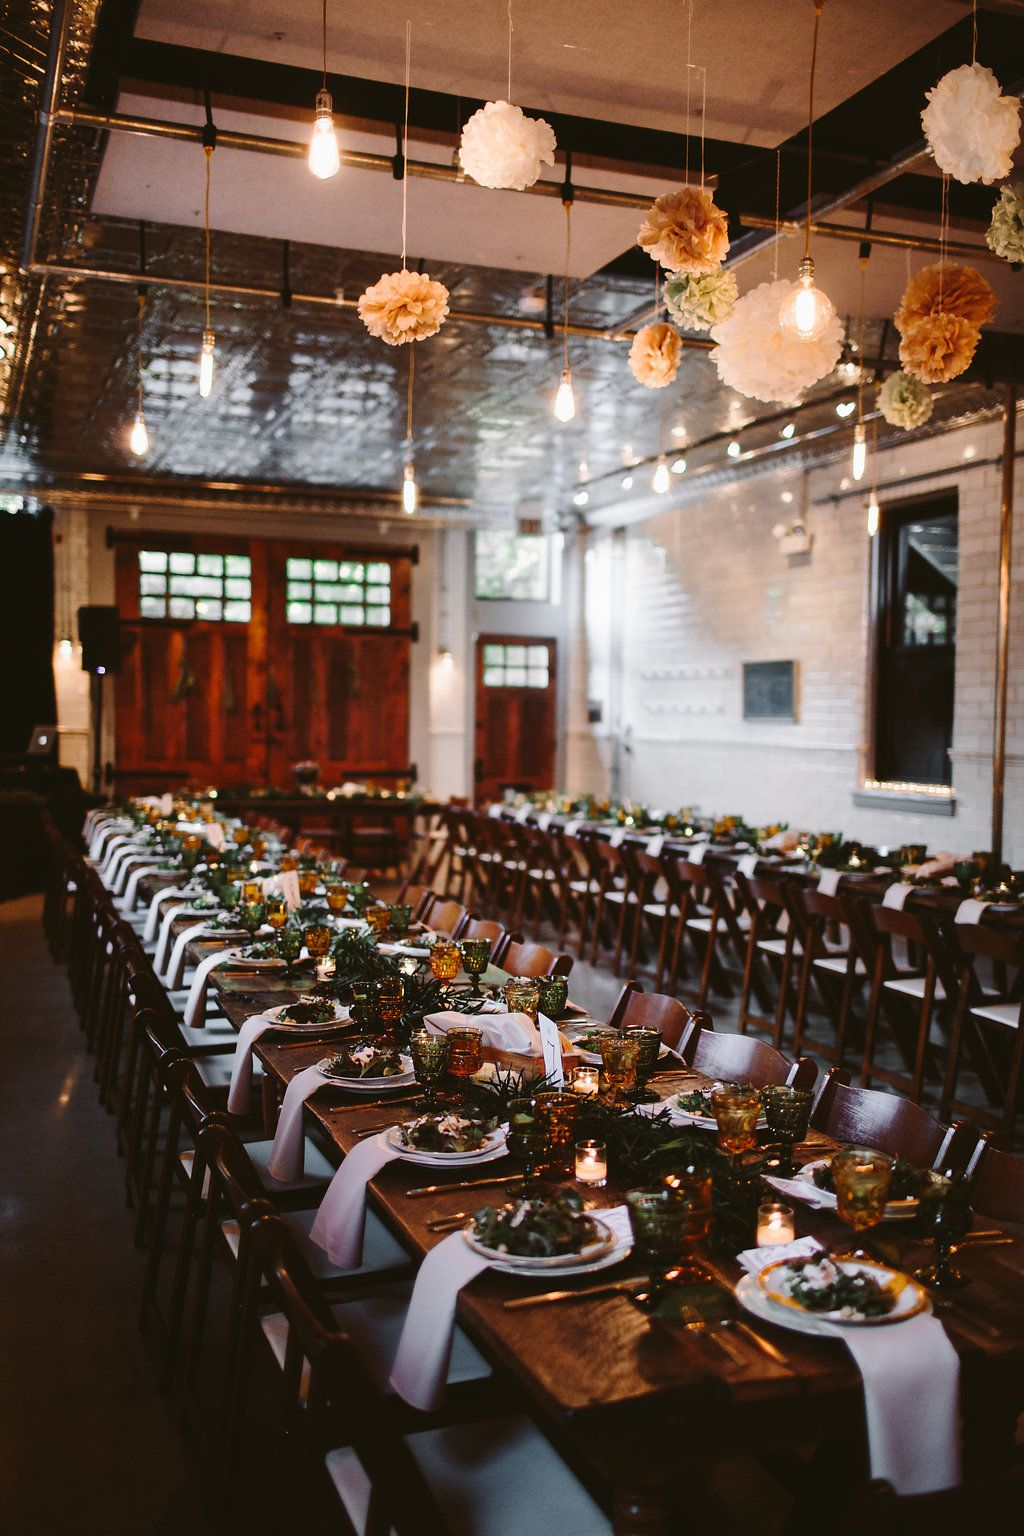 Moody Wedding Decor Firehouse Chicago Moody Moody Tones Moody Color Palette Photo By O Moody Wedding Decor Wedding Decor Inspiration Wedding Catering